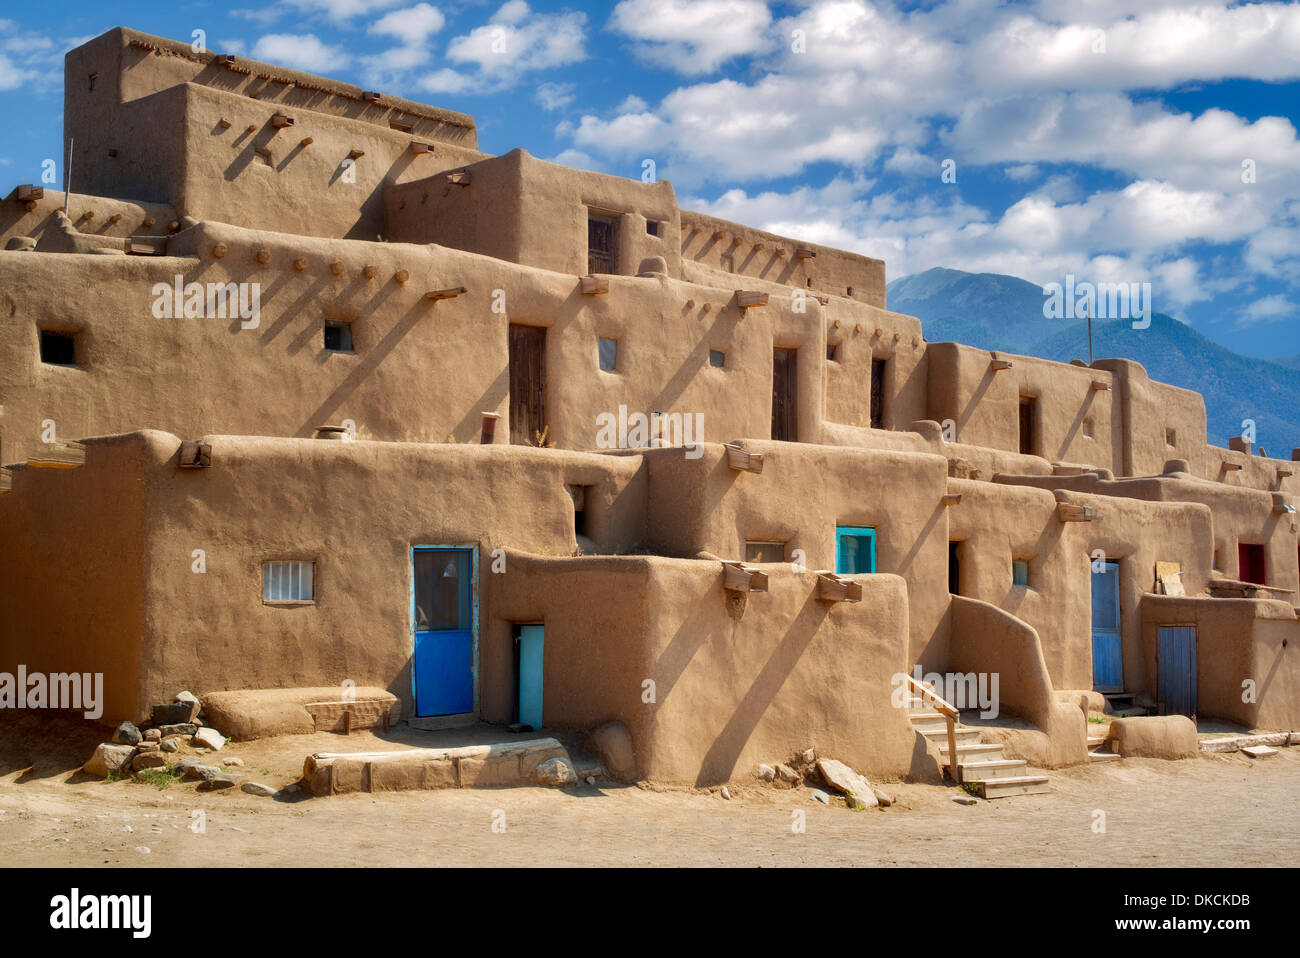 Dwelling structures in Pueblo de Taos. Taos, New Mexico - Stock Image